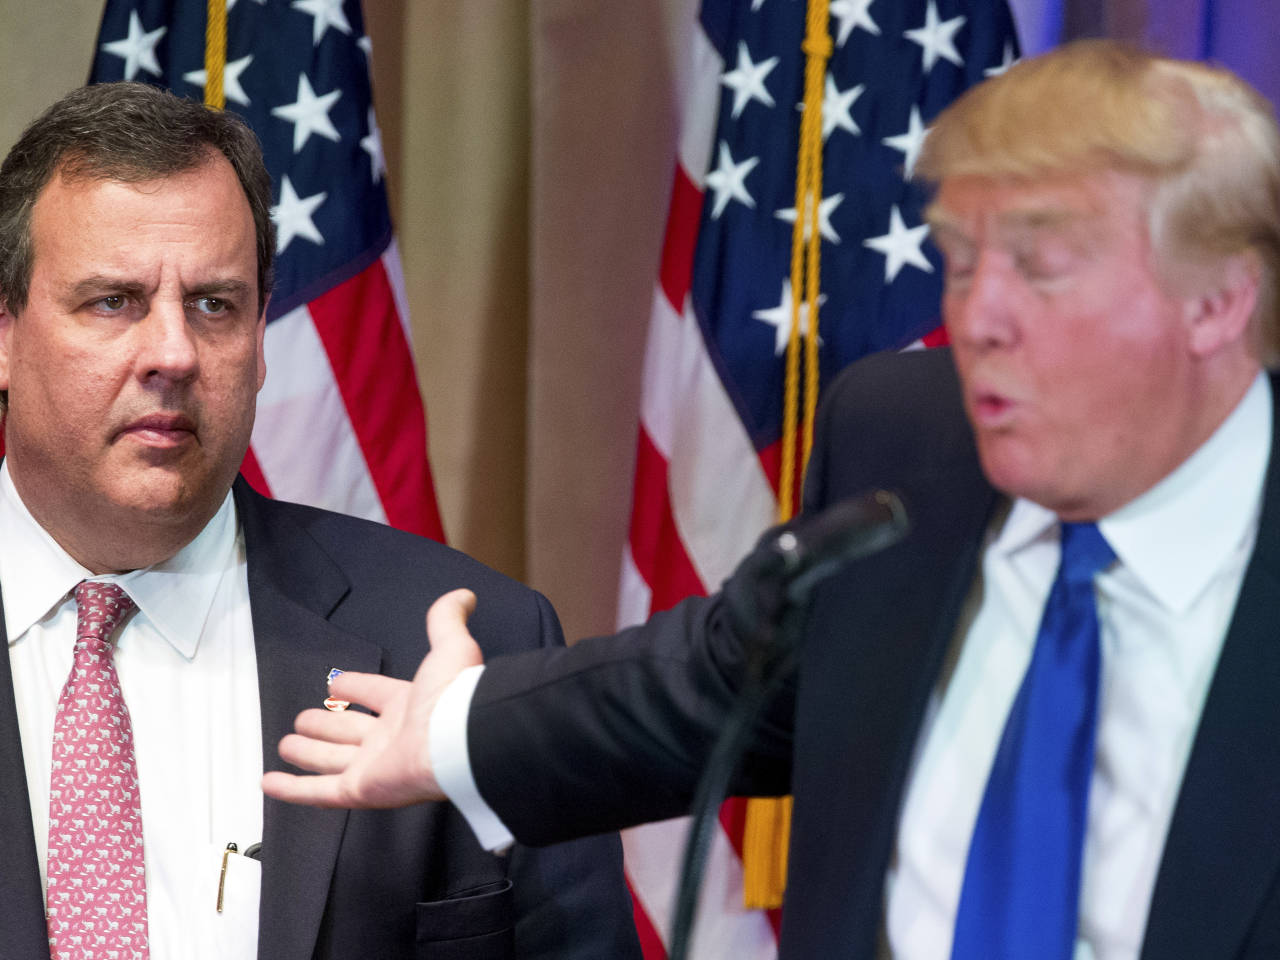 Donald Trump Offered Chris Christie VP Spot But Rescinded